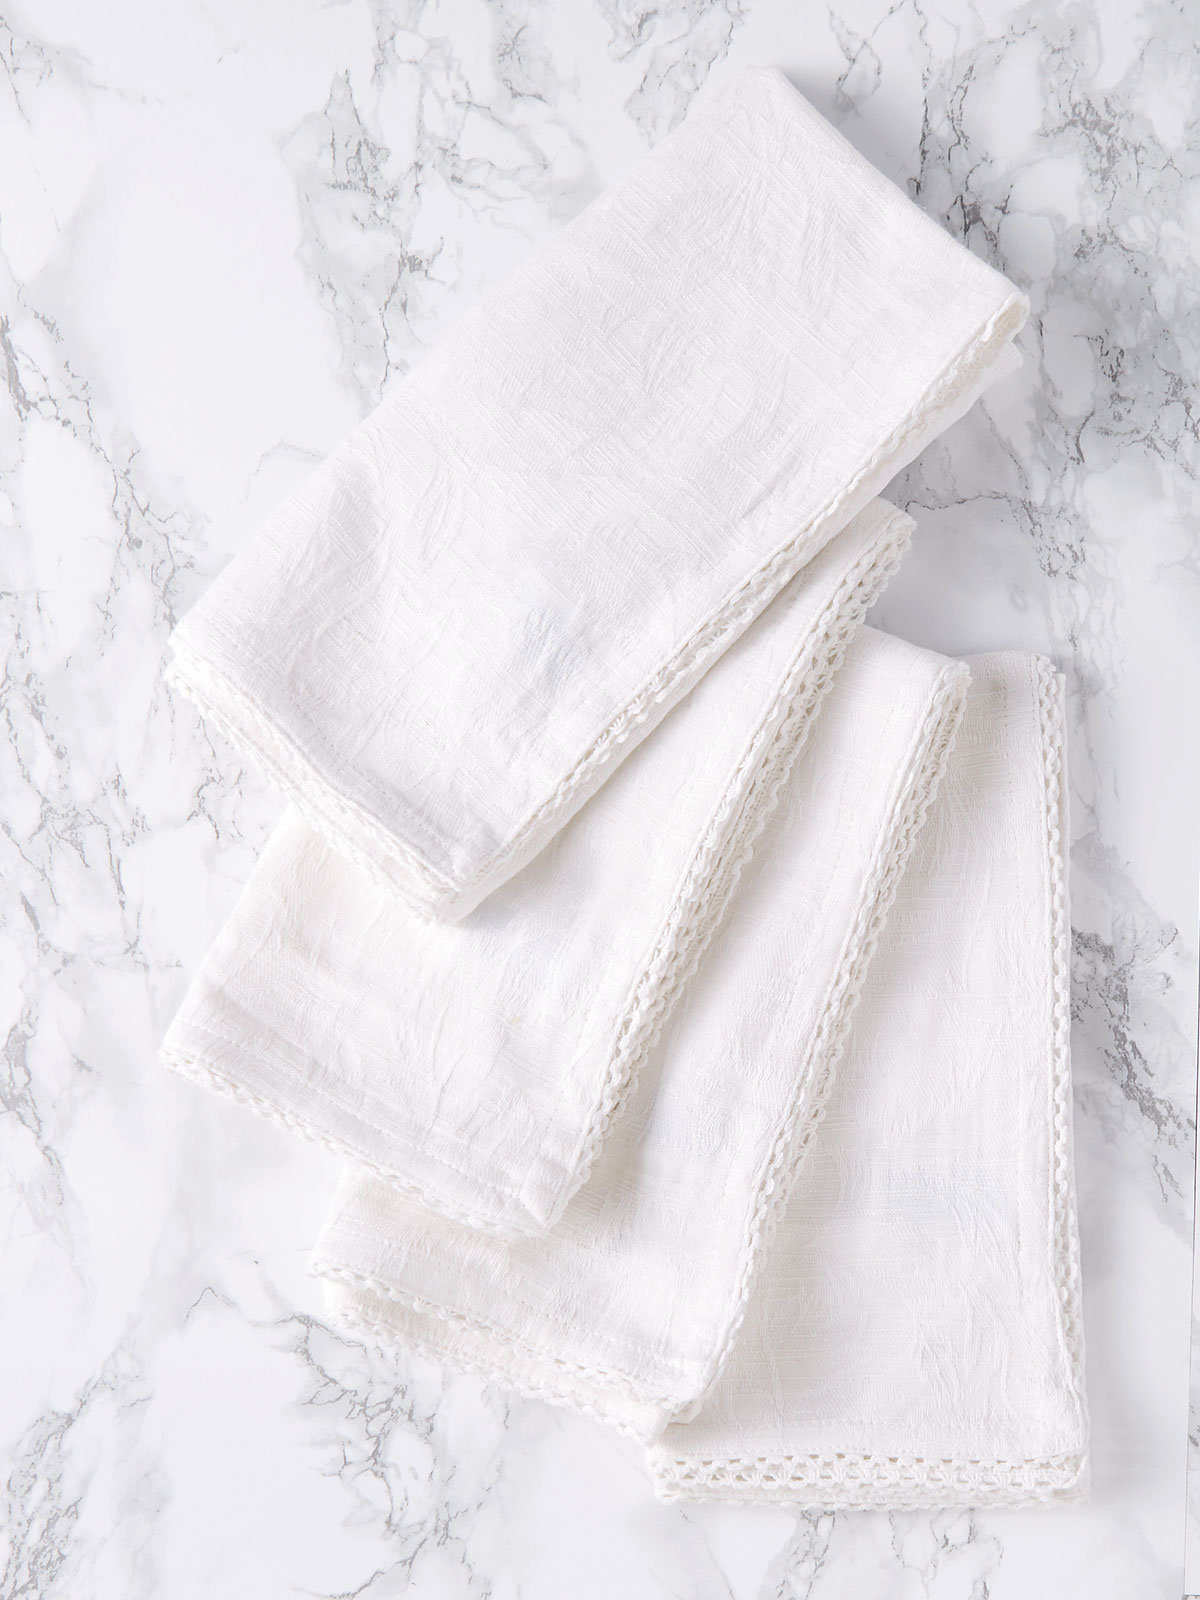 Luxurious Linen Jacquard Napkin Set of 4 - Ivory